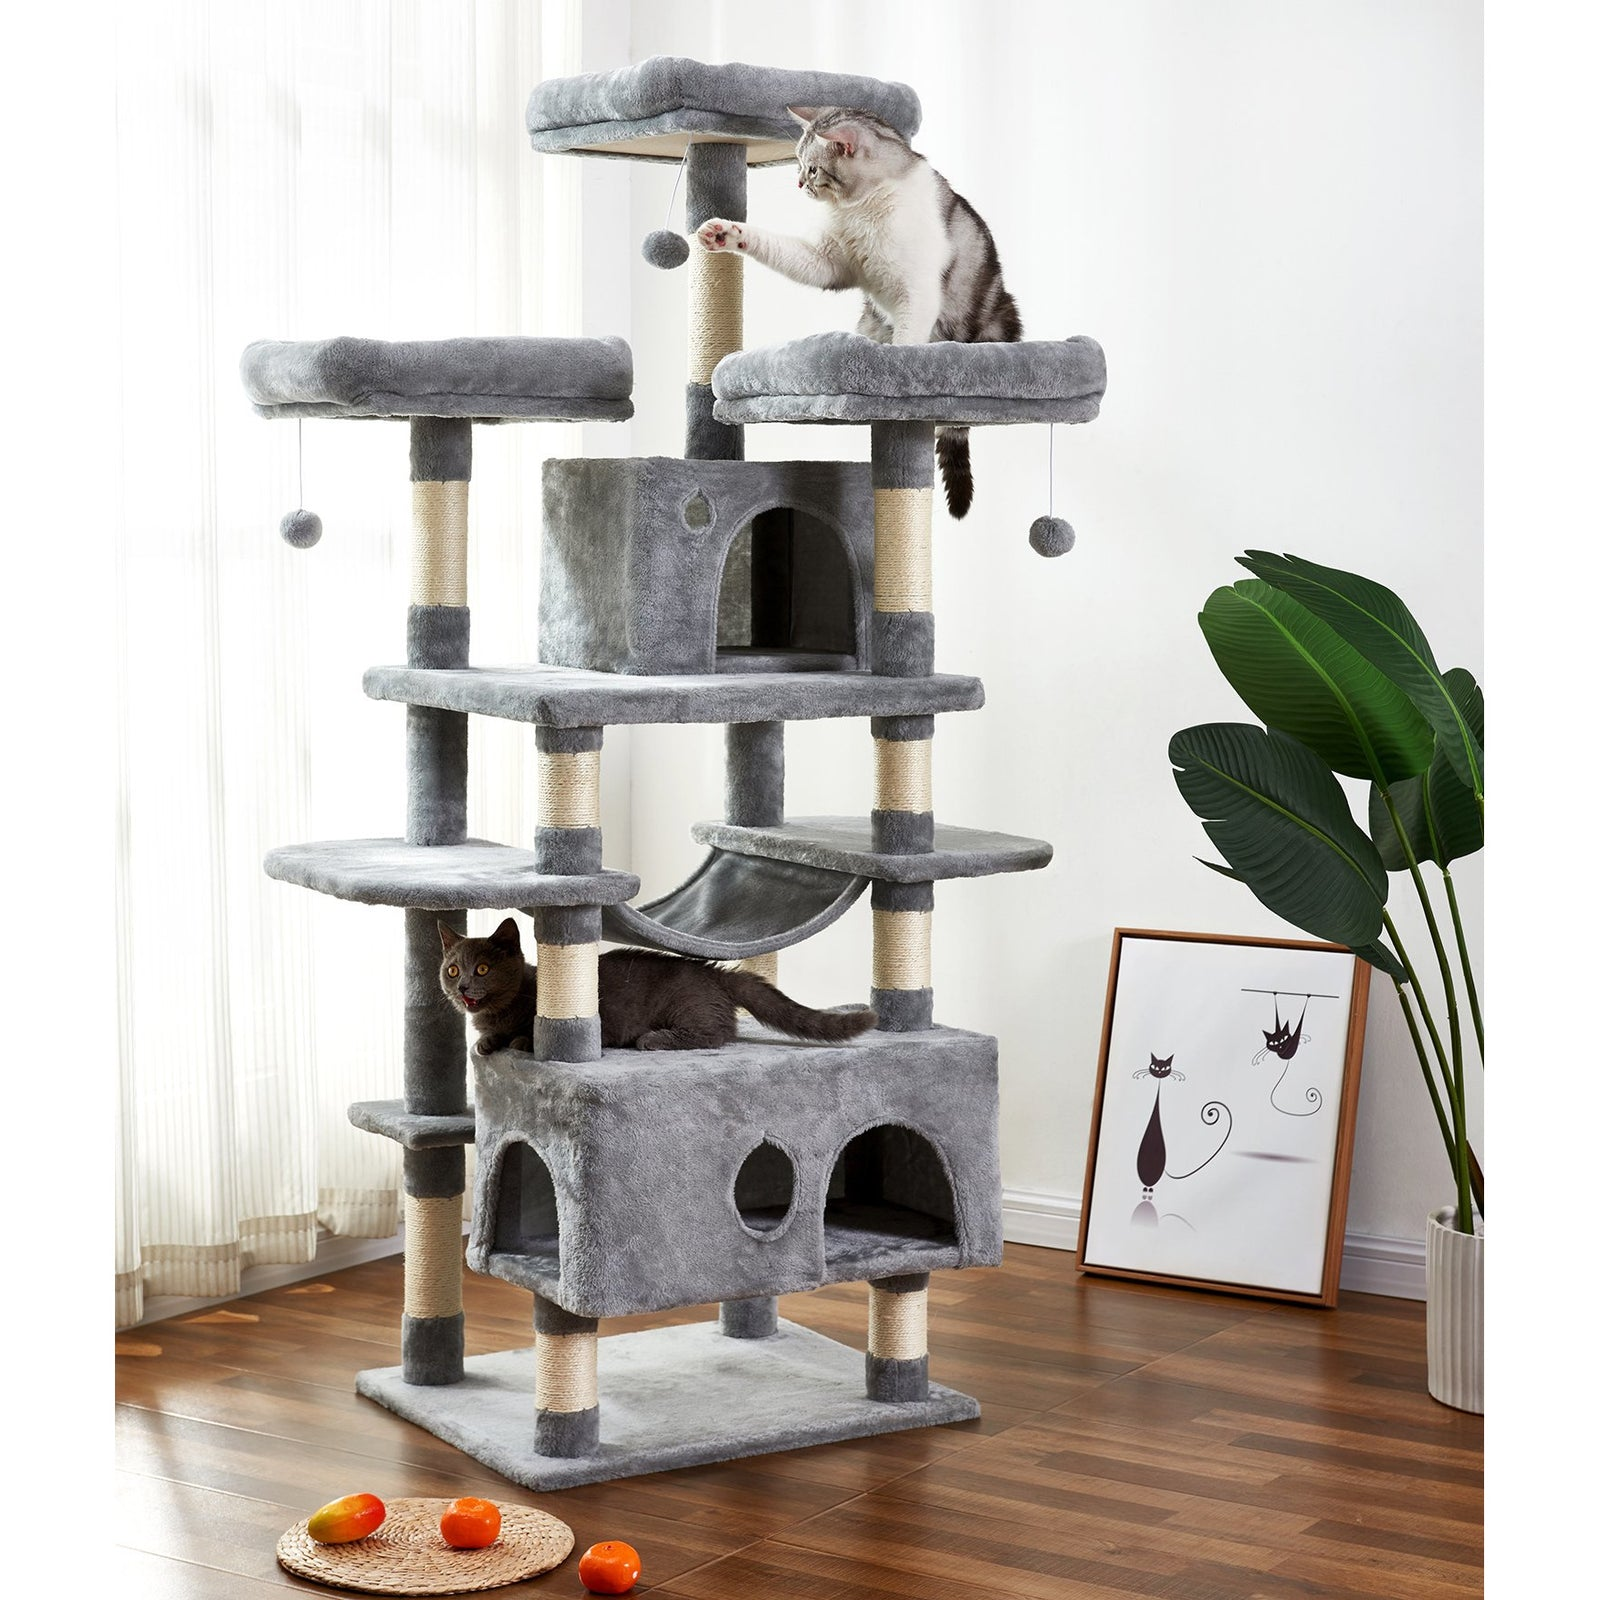 White Smoke Large Cat Tree Condo with Sisal Scratching Posts Perches Houses Hammock, Cat Tower Furniture Kitty Activity Center Kitten Play House Gray W46918552